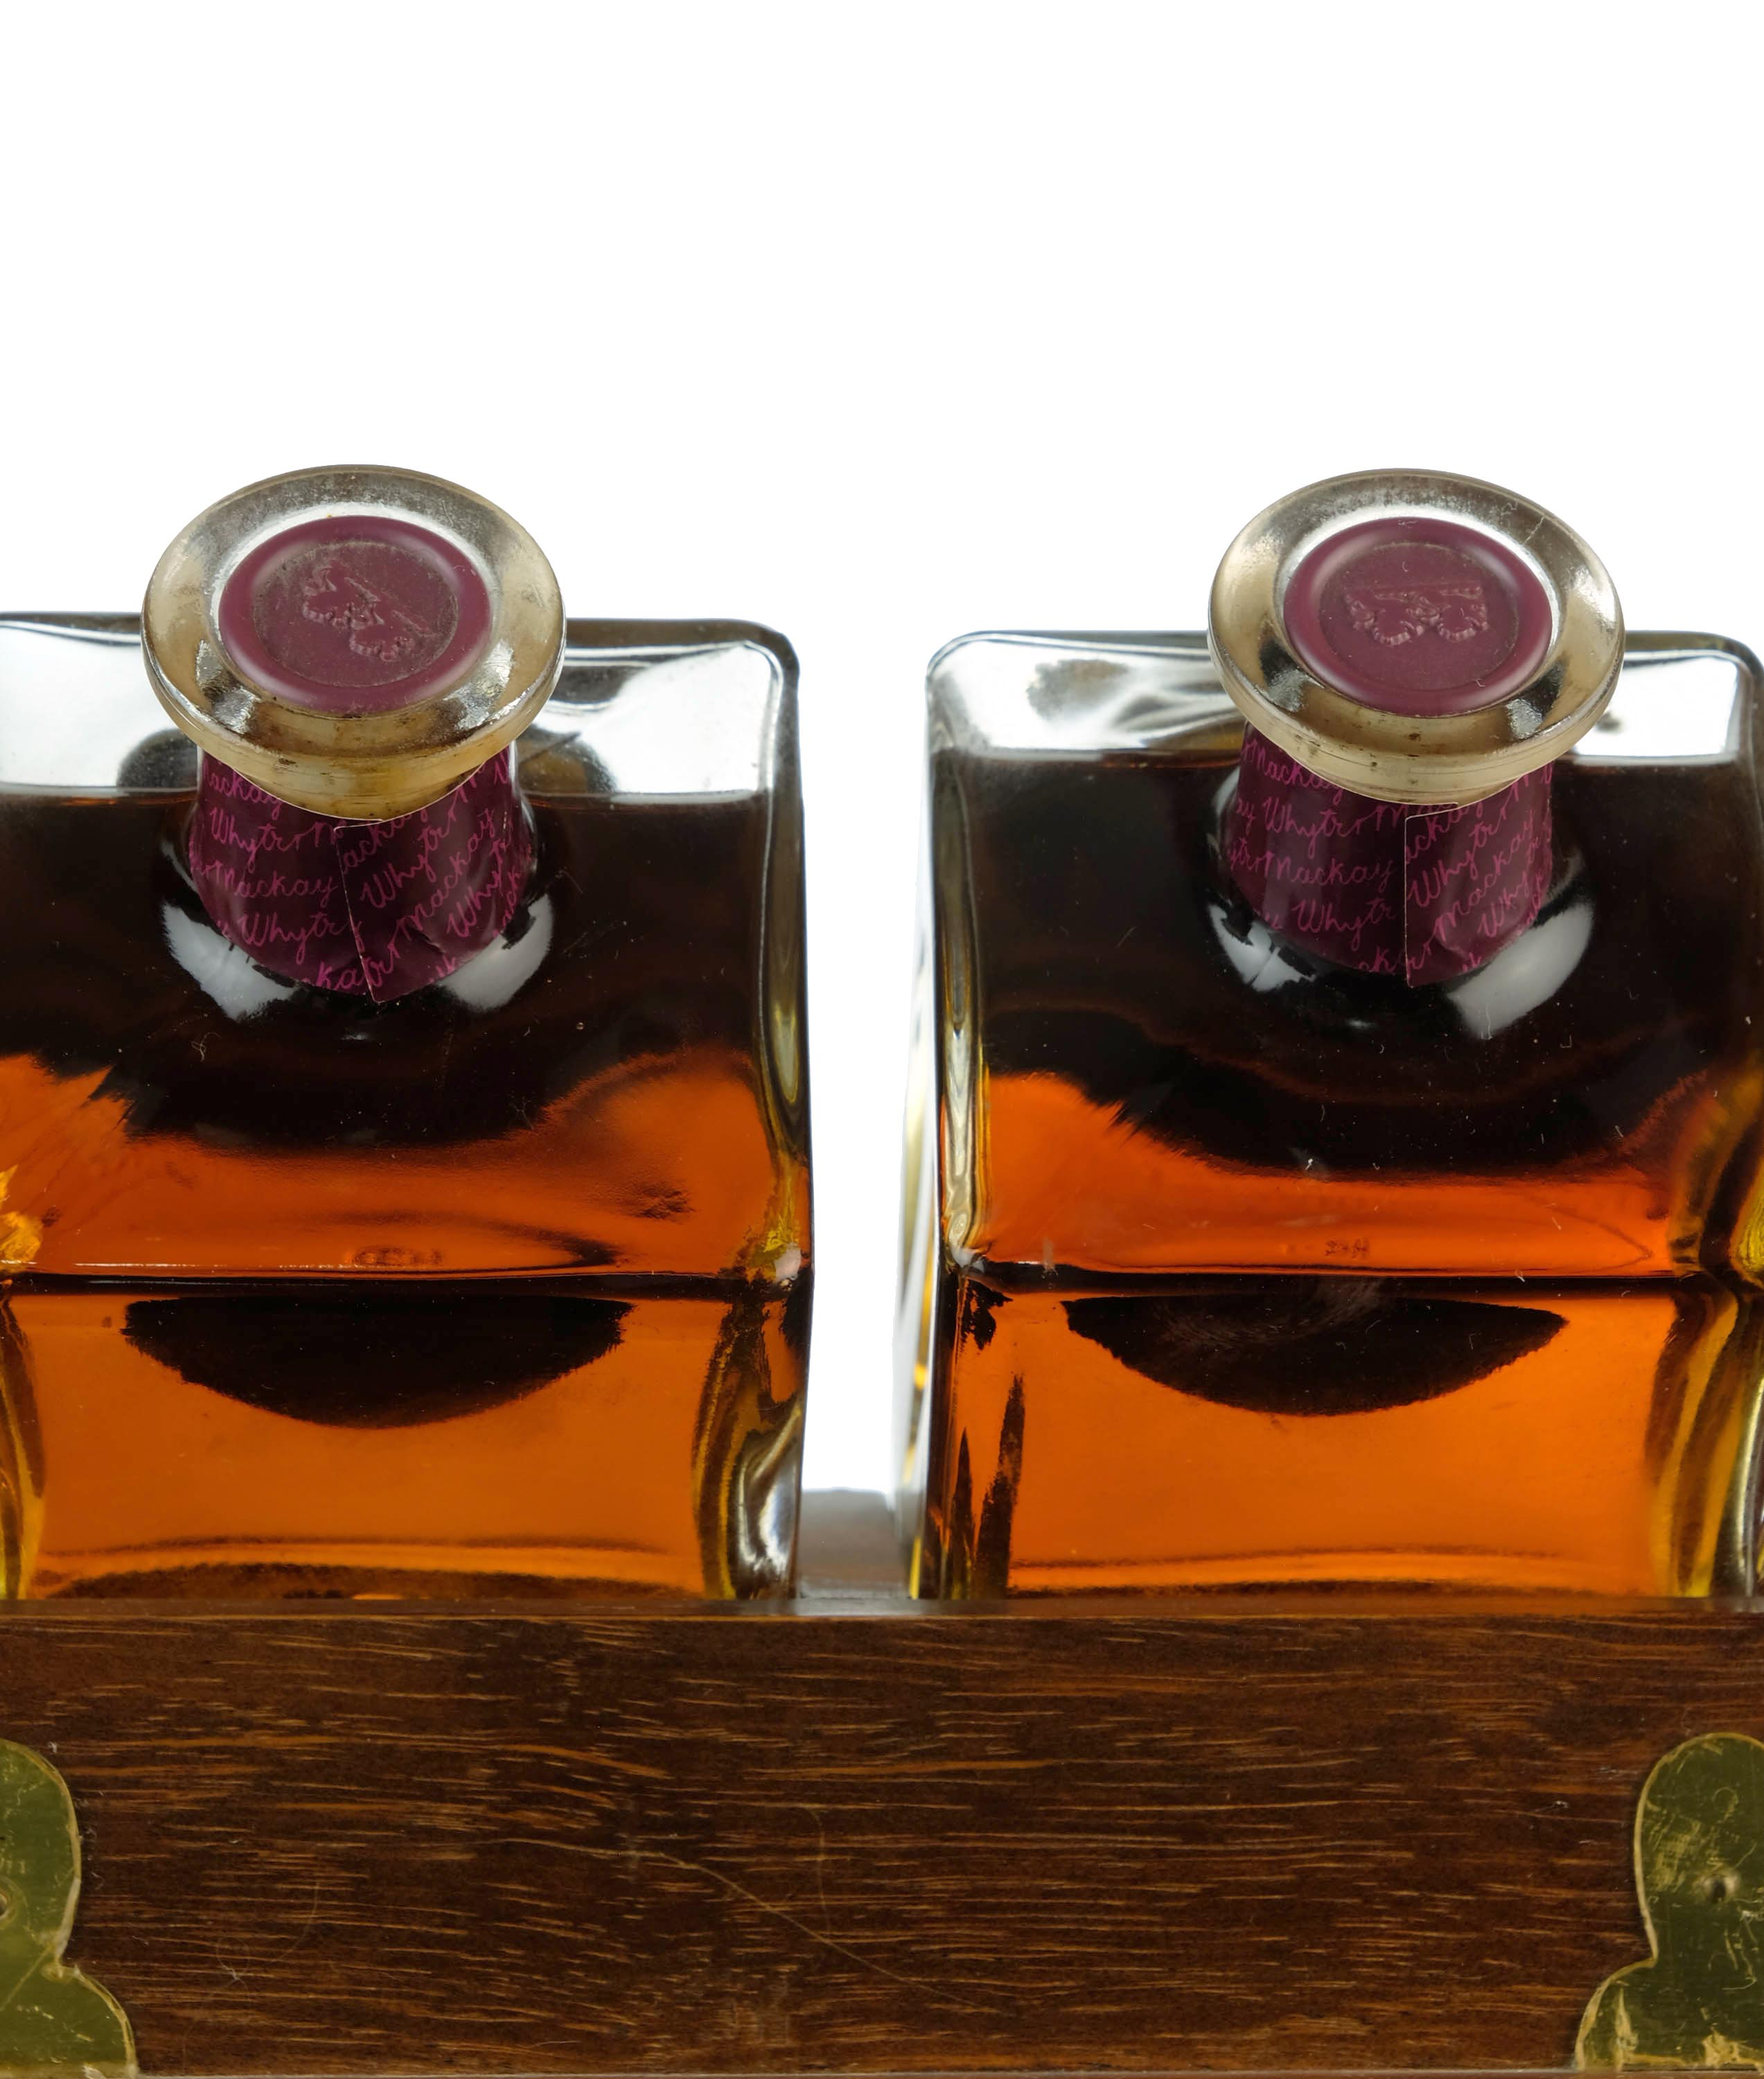 whyte & mackay tantalus - 12 and 21 year old